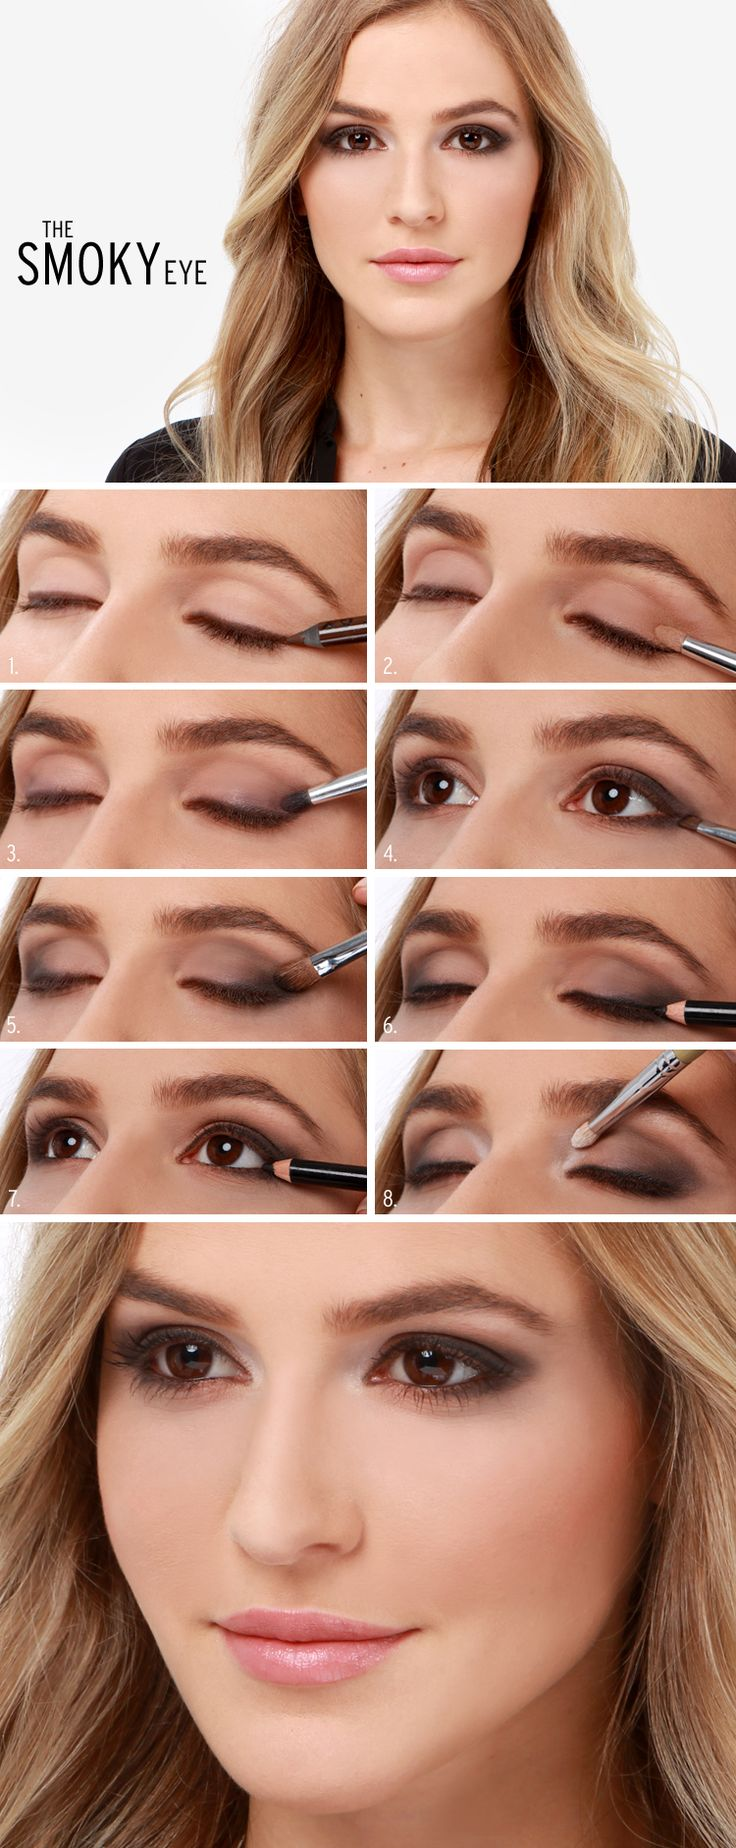 LuLu*s How-To: The Smoky Eye Makeup Tutorial at LuLus.com!